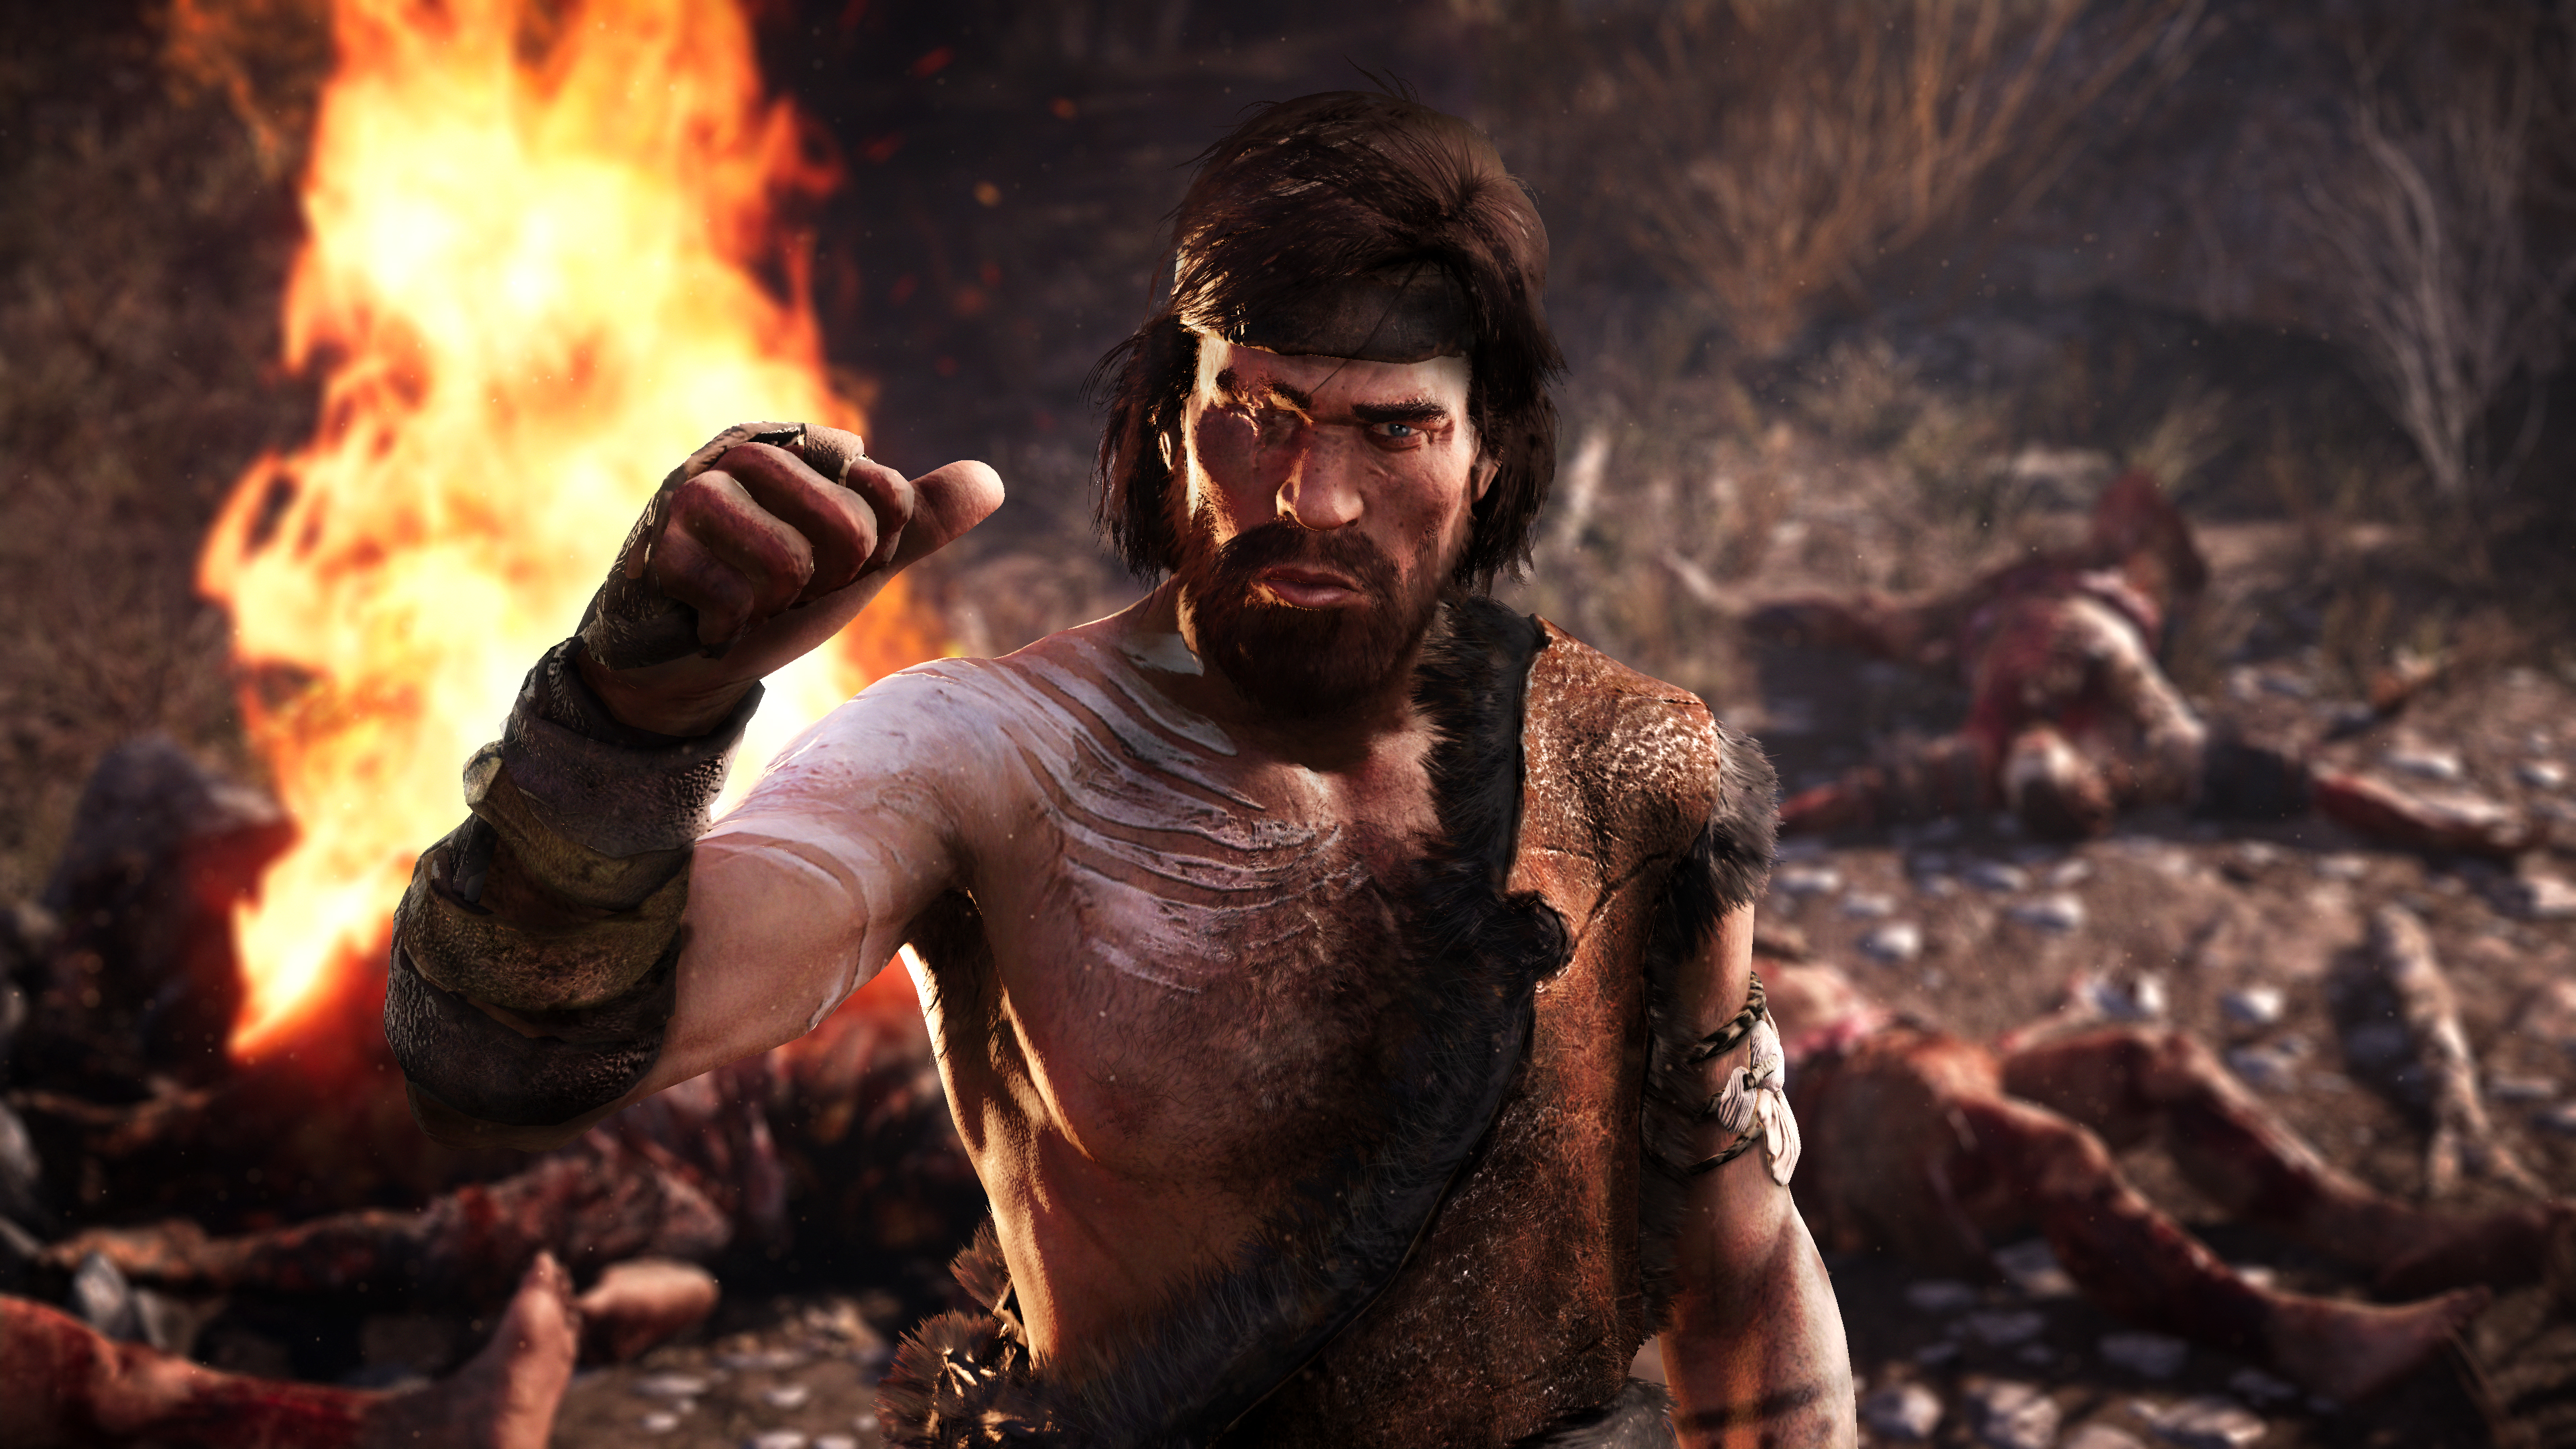 Far Cry Primal Backgrounds, Pictures, Images